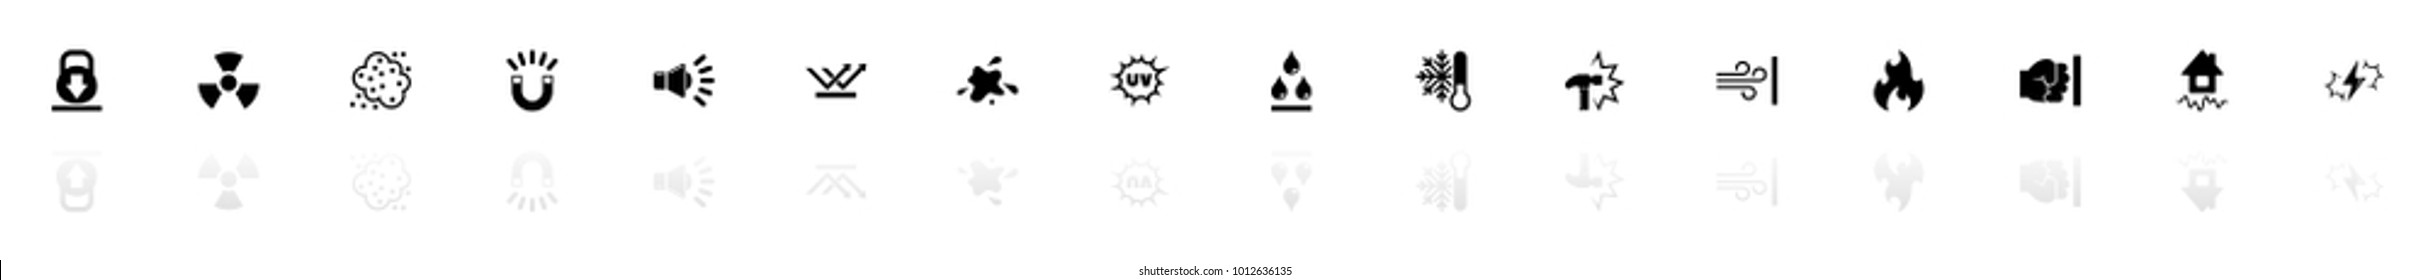 Influence icons - Black horizontal Illustration symbol on White Background with a mirror Shadow reflection. Flat Vector Icon.